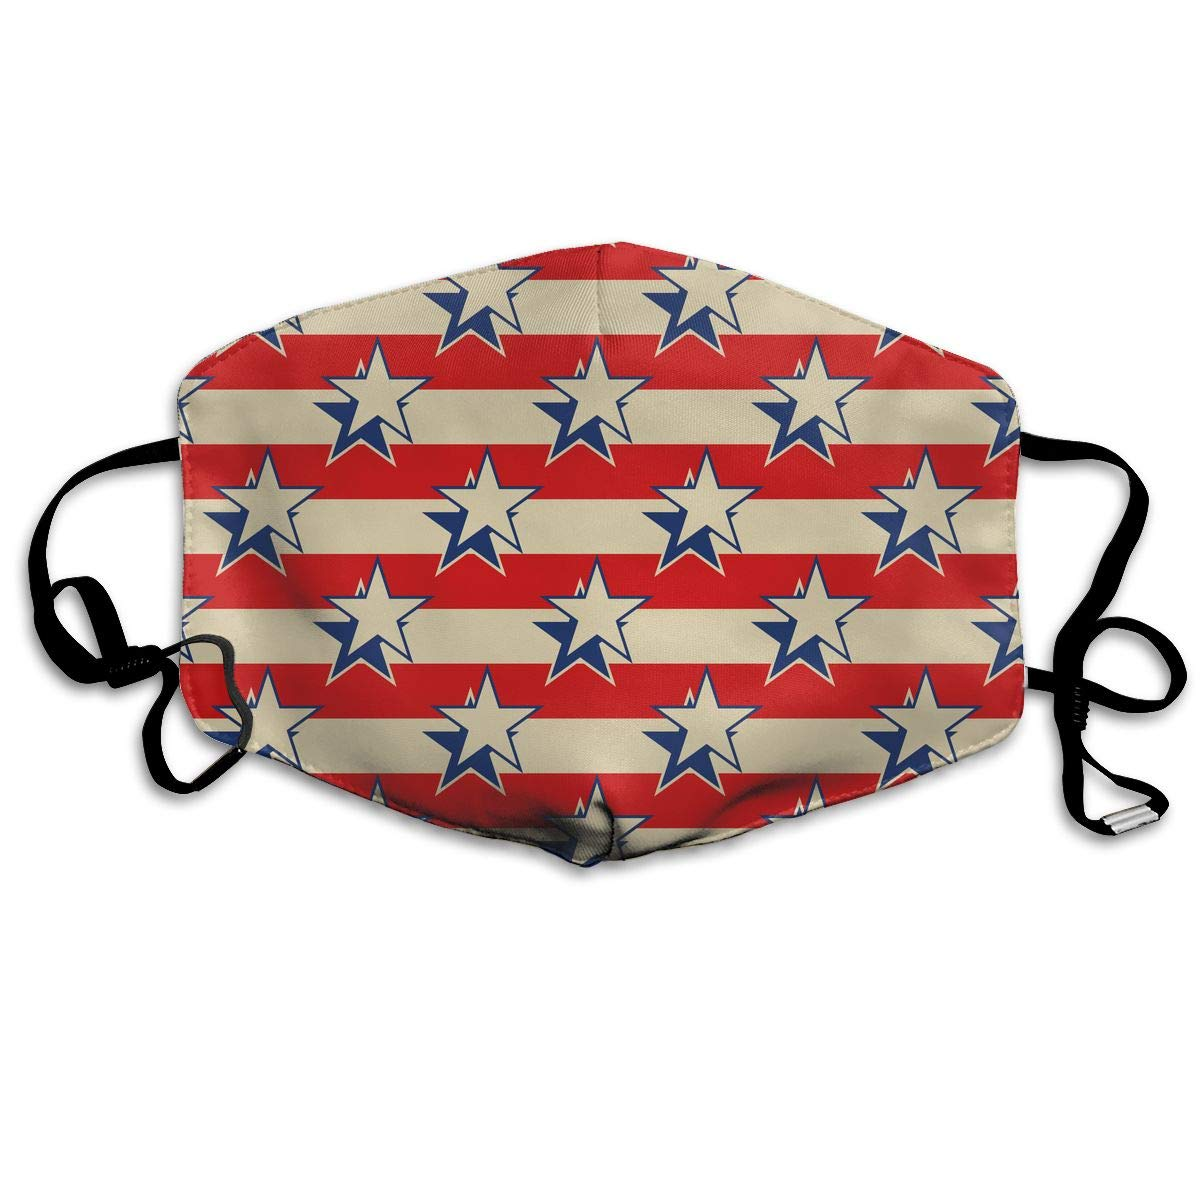 Unisex Stars Stripes USA Patriotic Printed Cotton Mouth-Masks Face Mask Polyester Anti-dust Masks by KZ MASKS